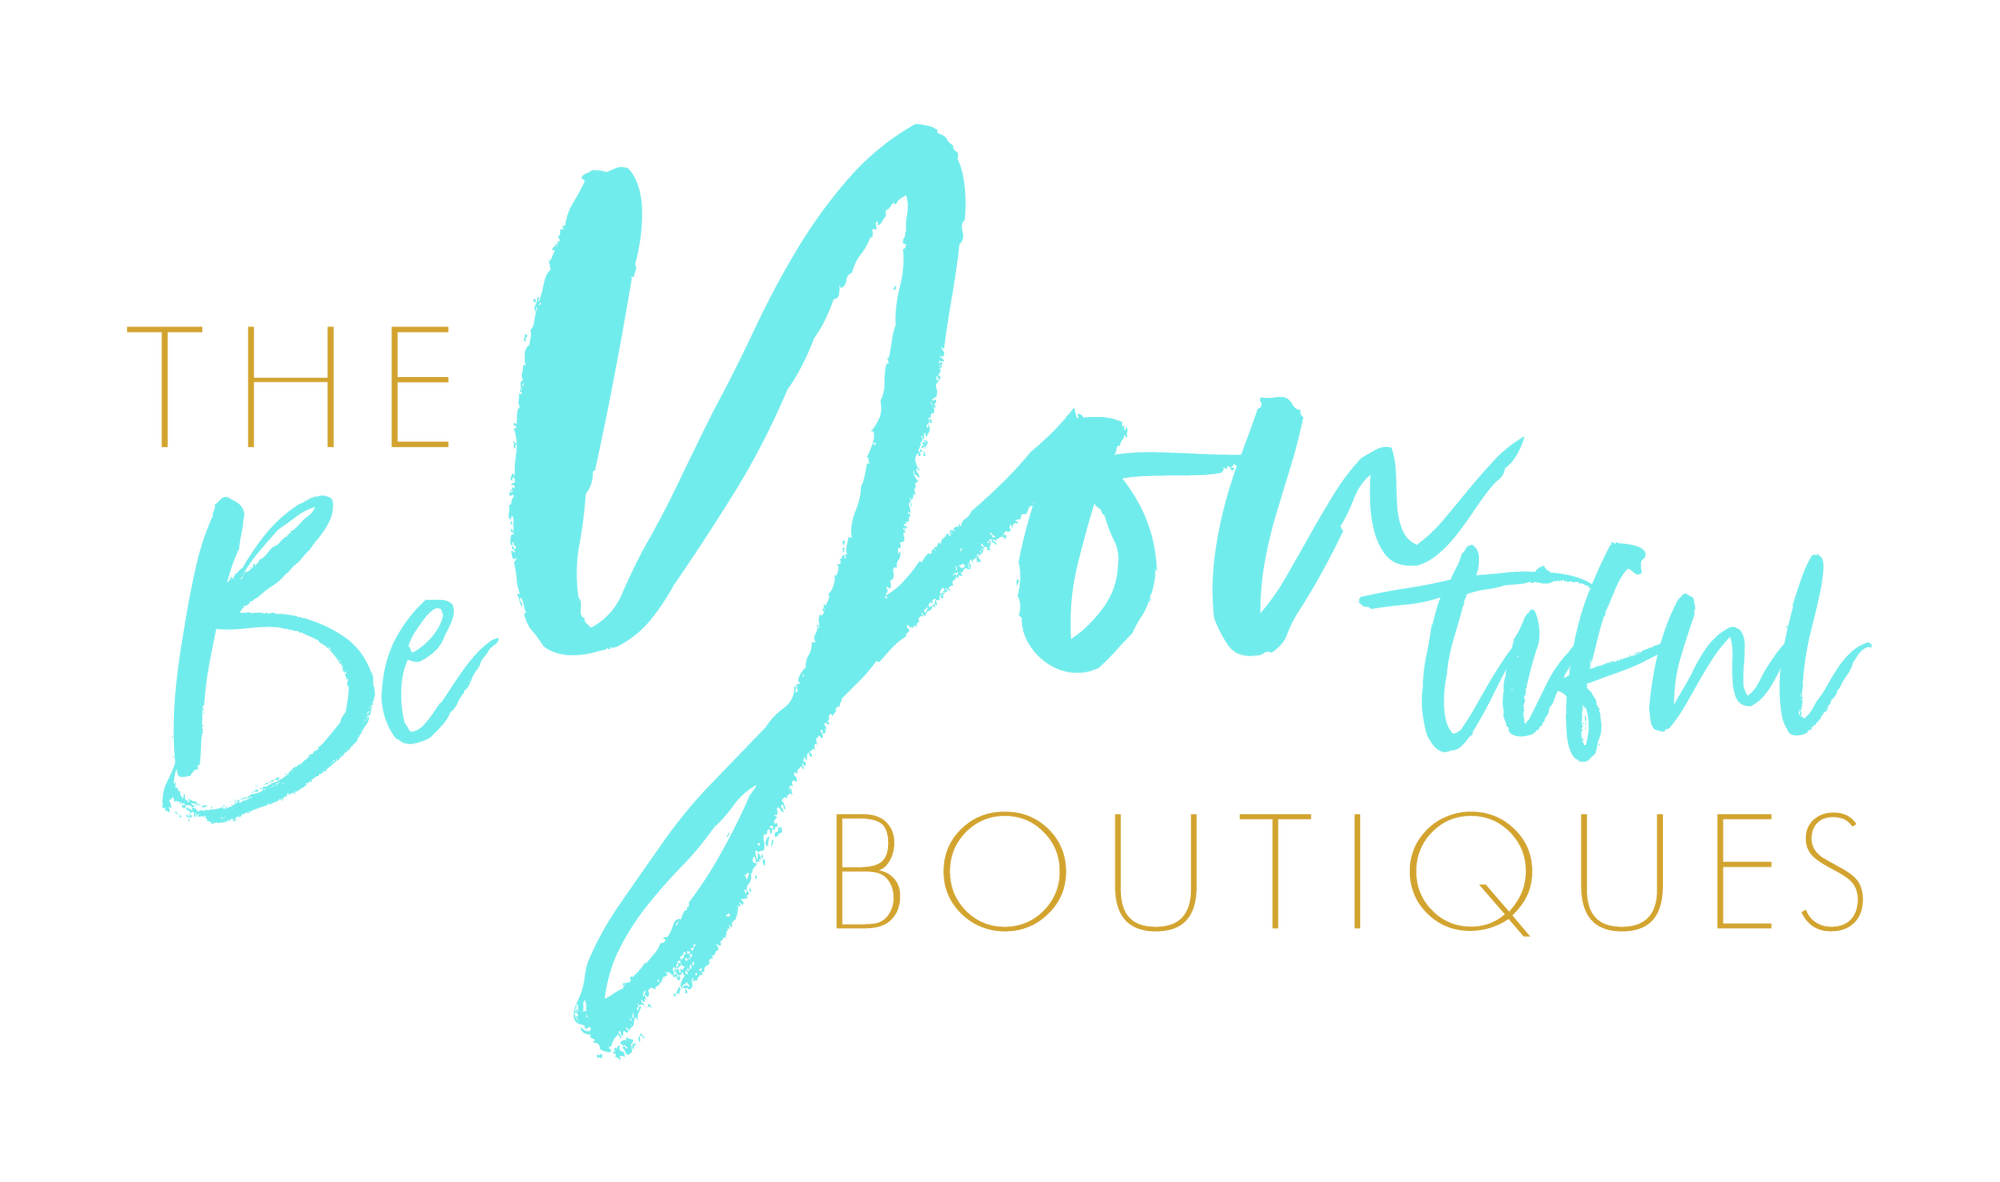 The BeYOUtiful Boutiques on Wheels